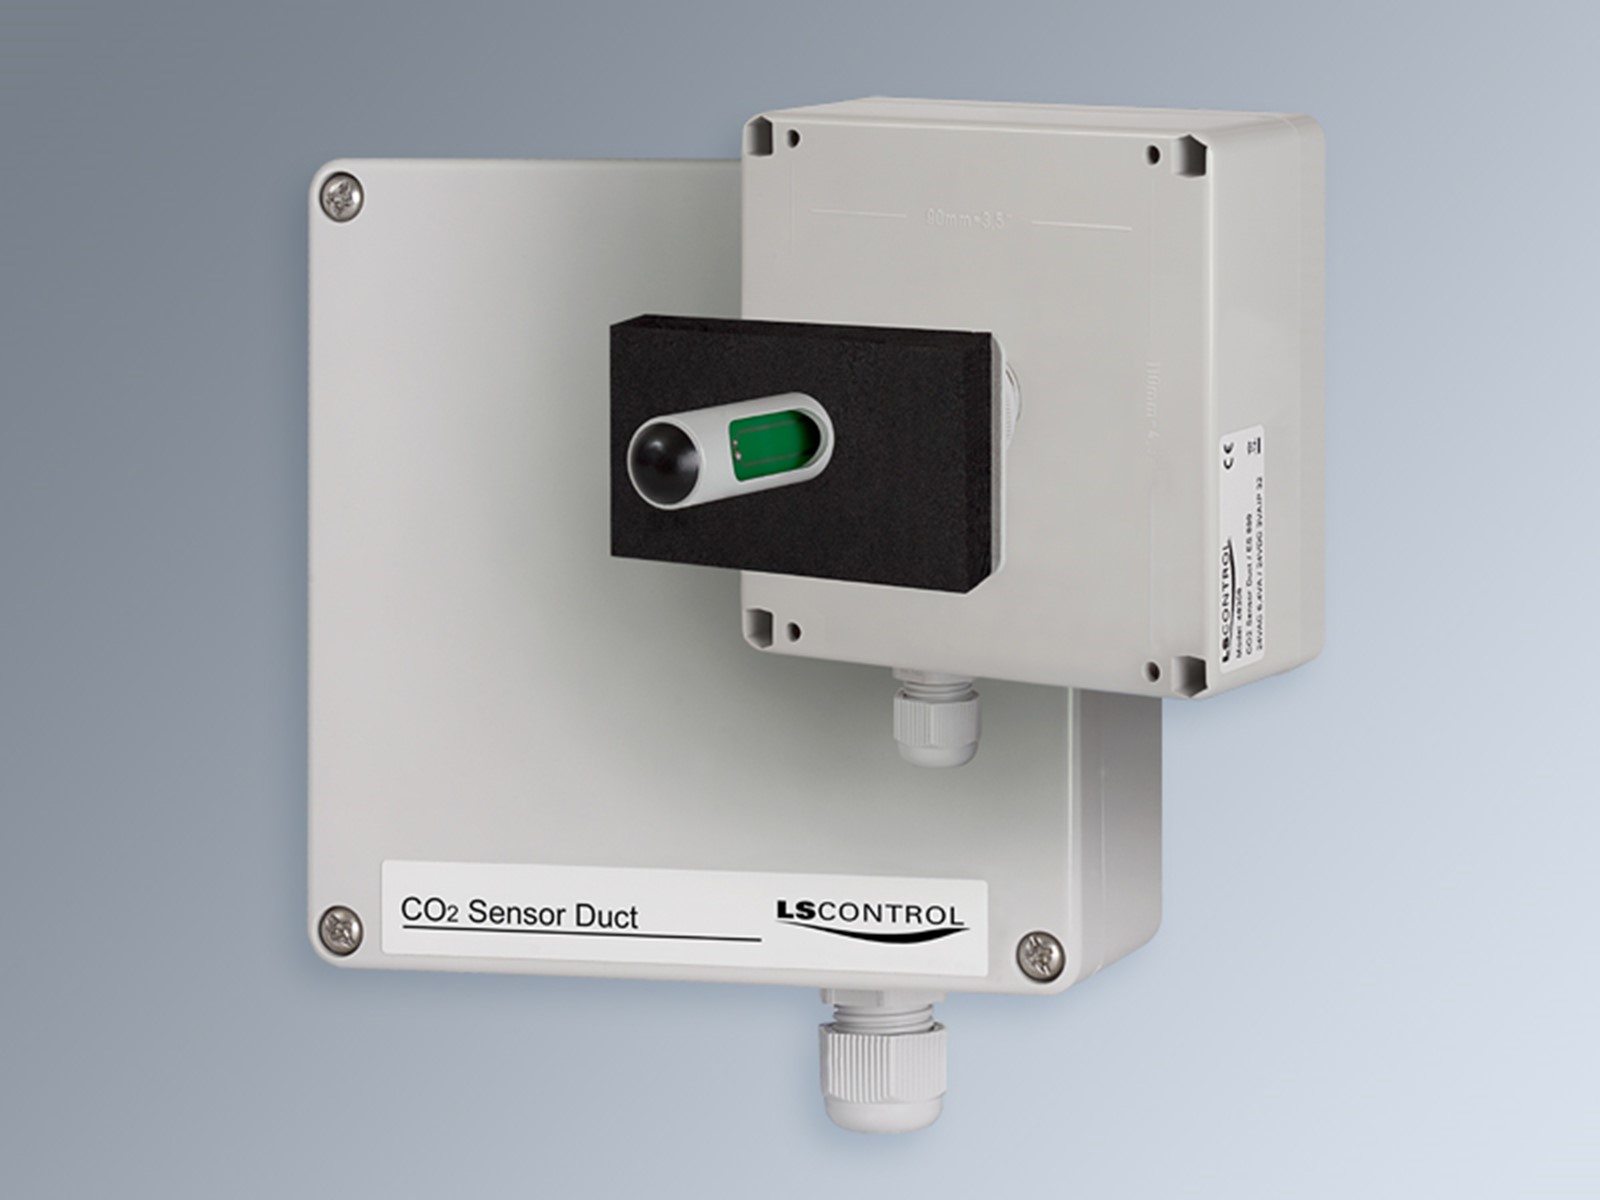 CO2 Regulator Duct, modbus / ES 899